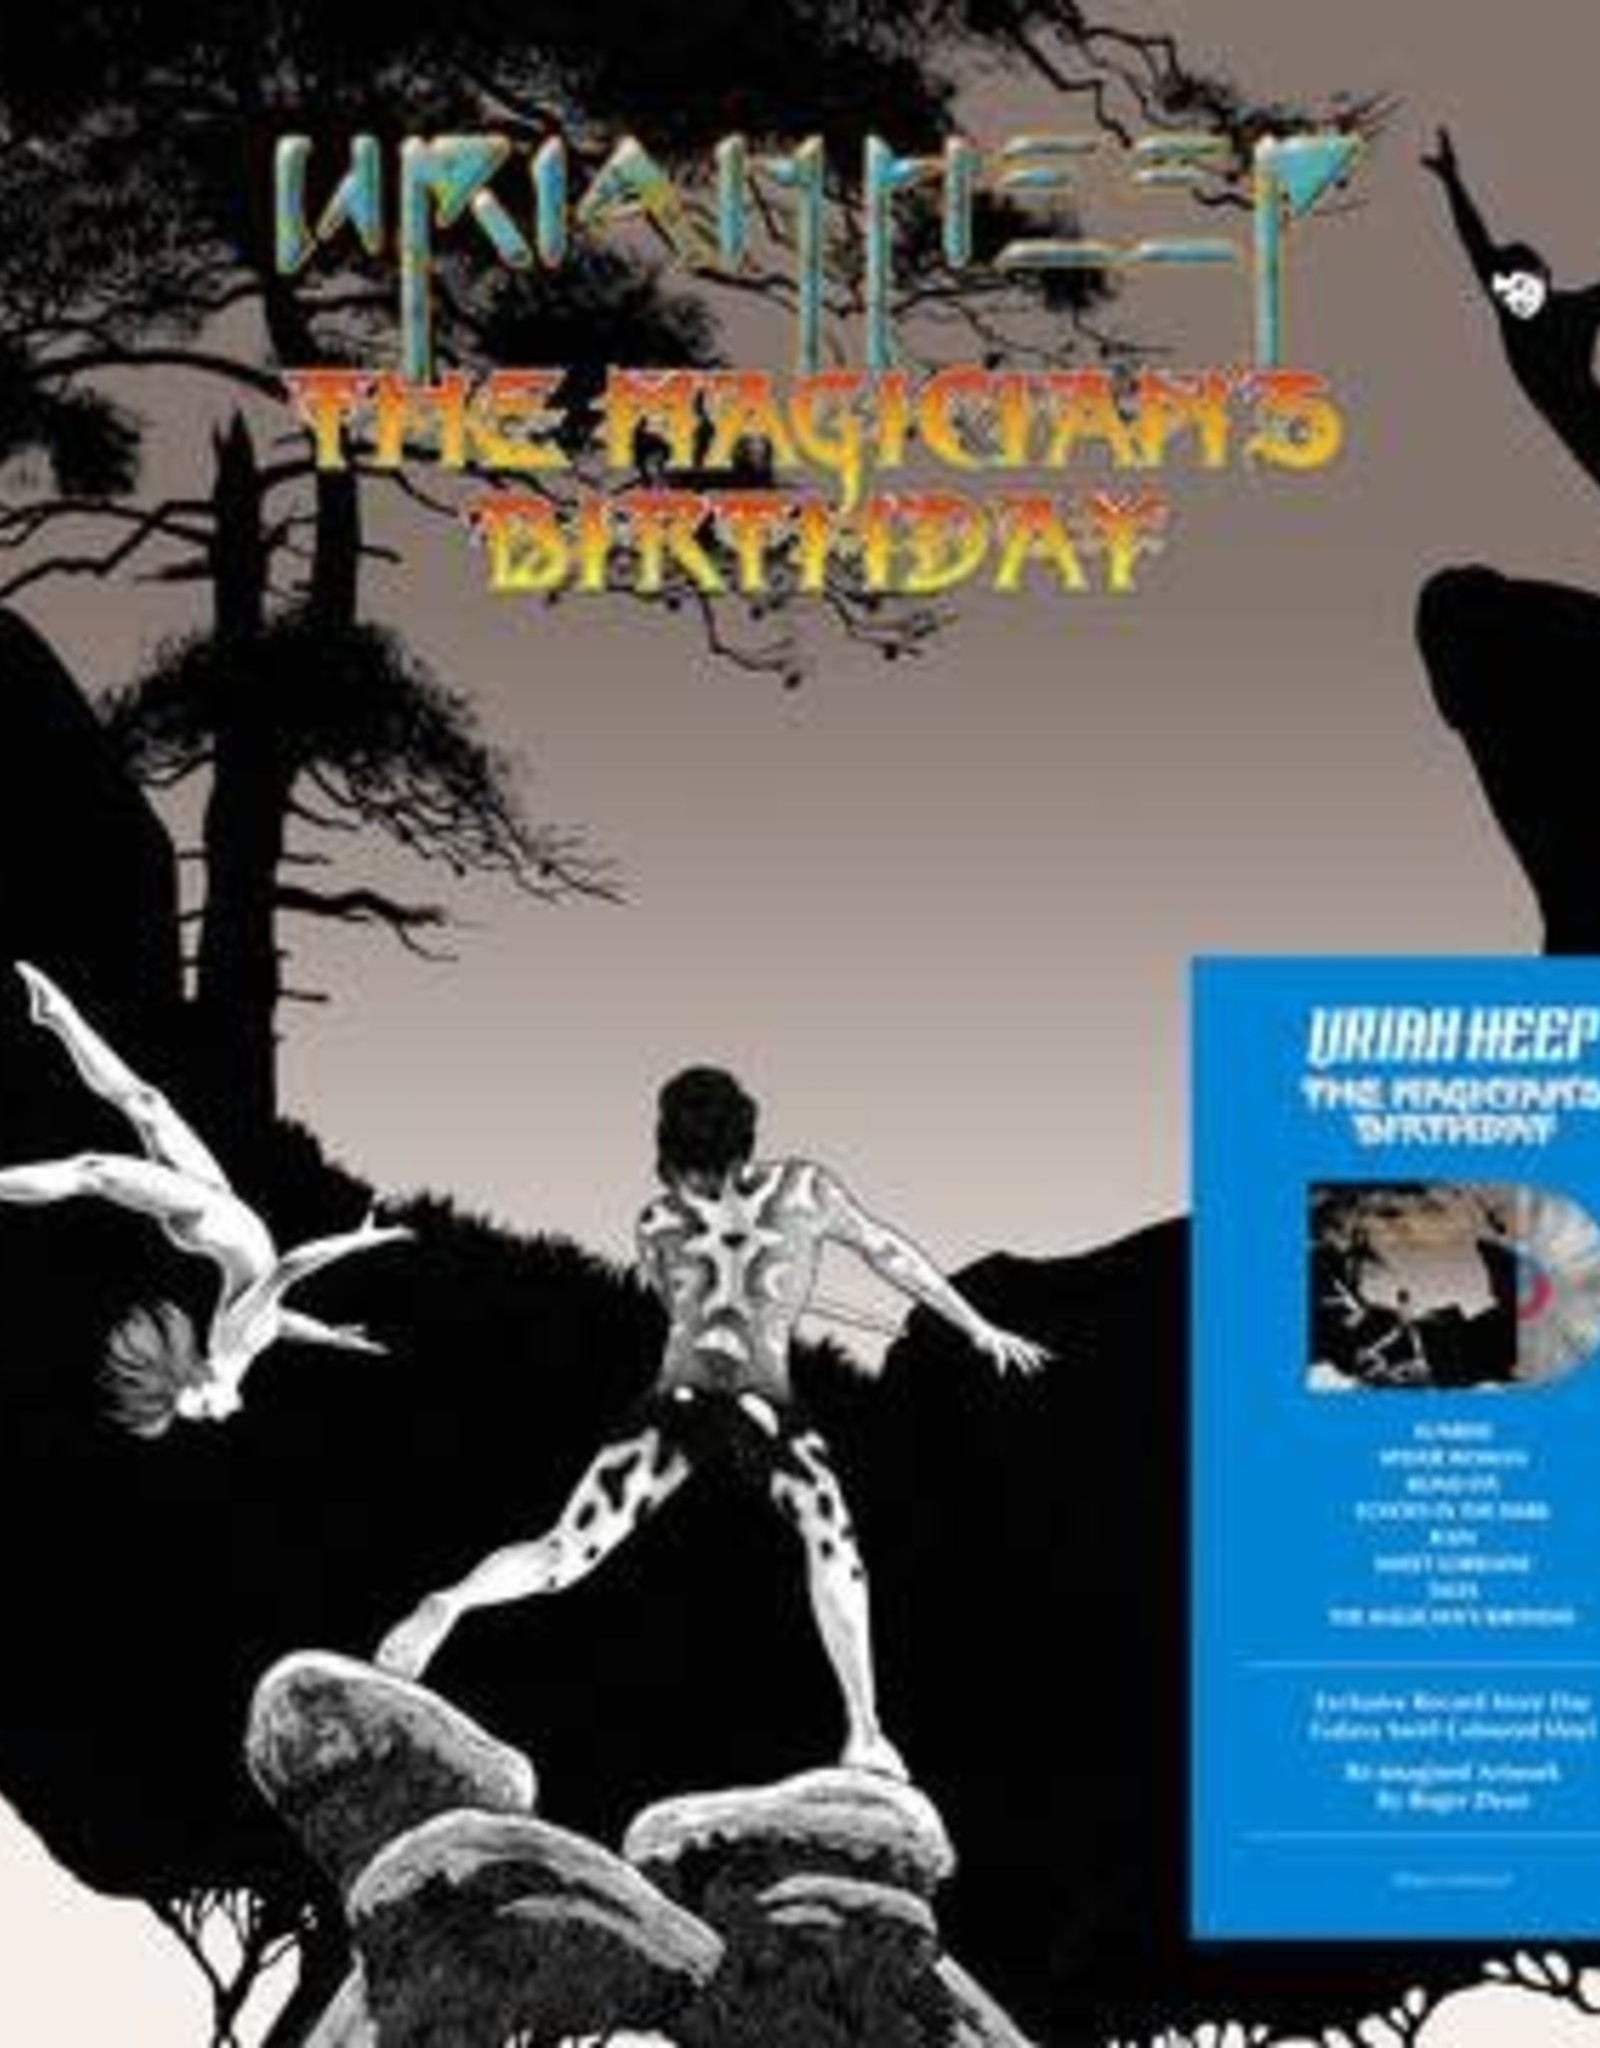 Uriah Heep - Magician's Birthday (Galaxy Swirl Vinyl/Picture Disc/Reimagined Artwork By Roger Dean) (RSD 6/21)